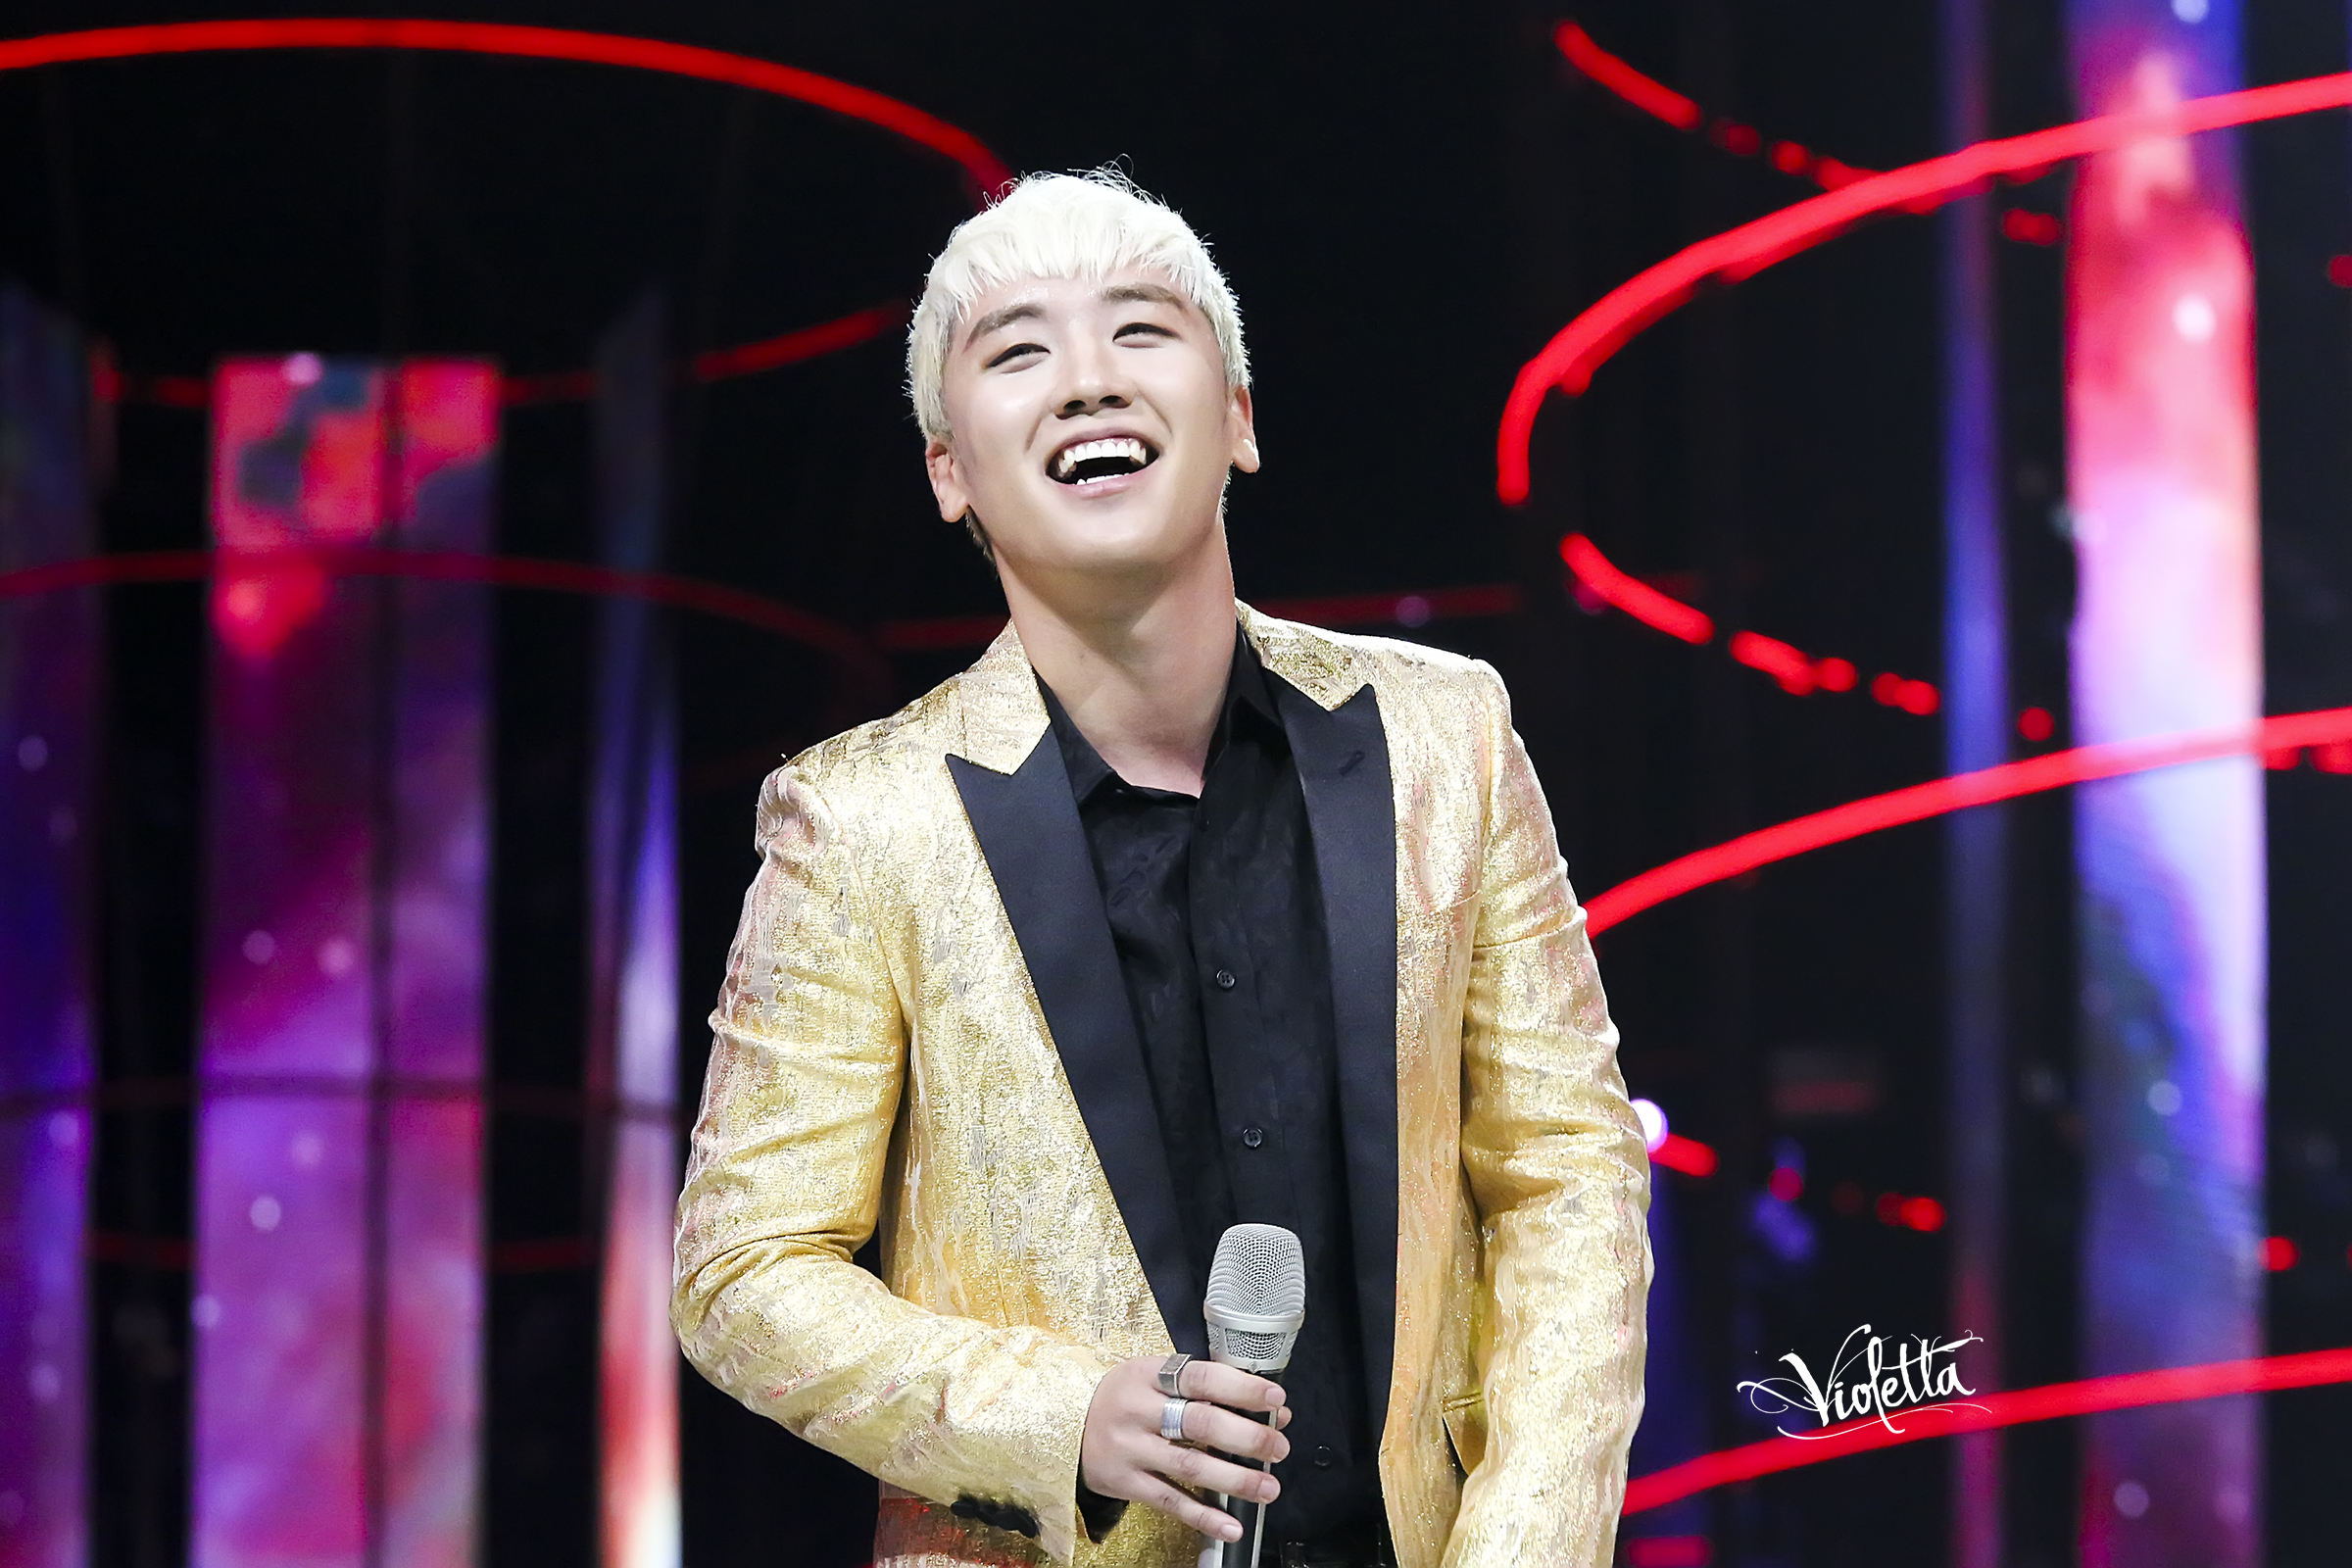 BIGBANG VIPevent Beijing 2016-01-01 By BIGBANG Hunan TV 2015-12-31 By Violetta_1212 (23)